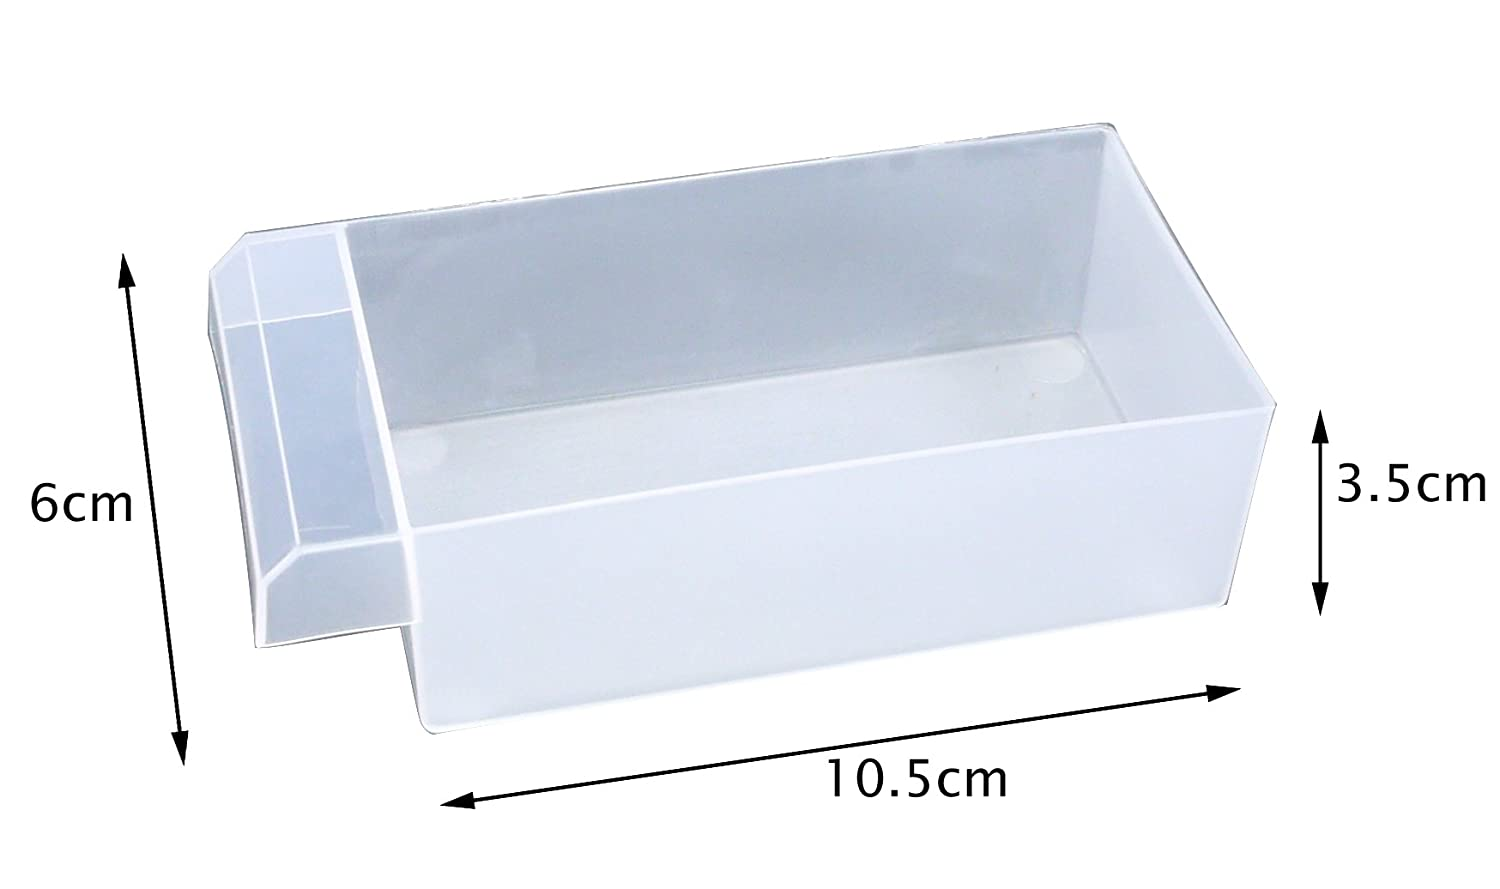 garage or shed Clear drawers. Perfect for home Keeps things organised and tidy Britten /& James 20 Drawer Plastic Storage Cabinet for small items Tough and durable so will last for years